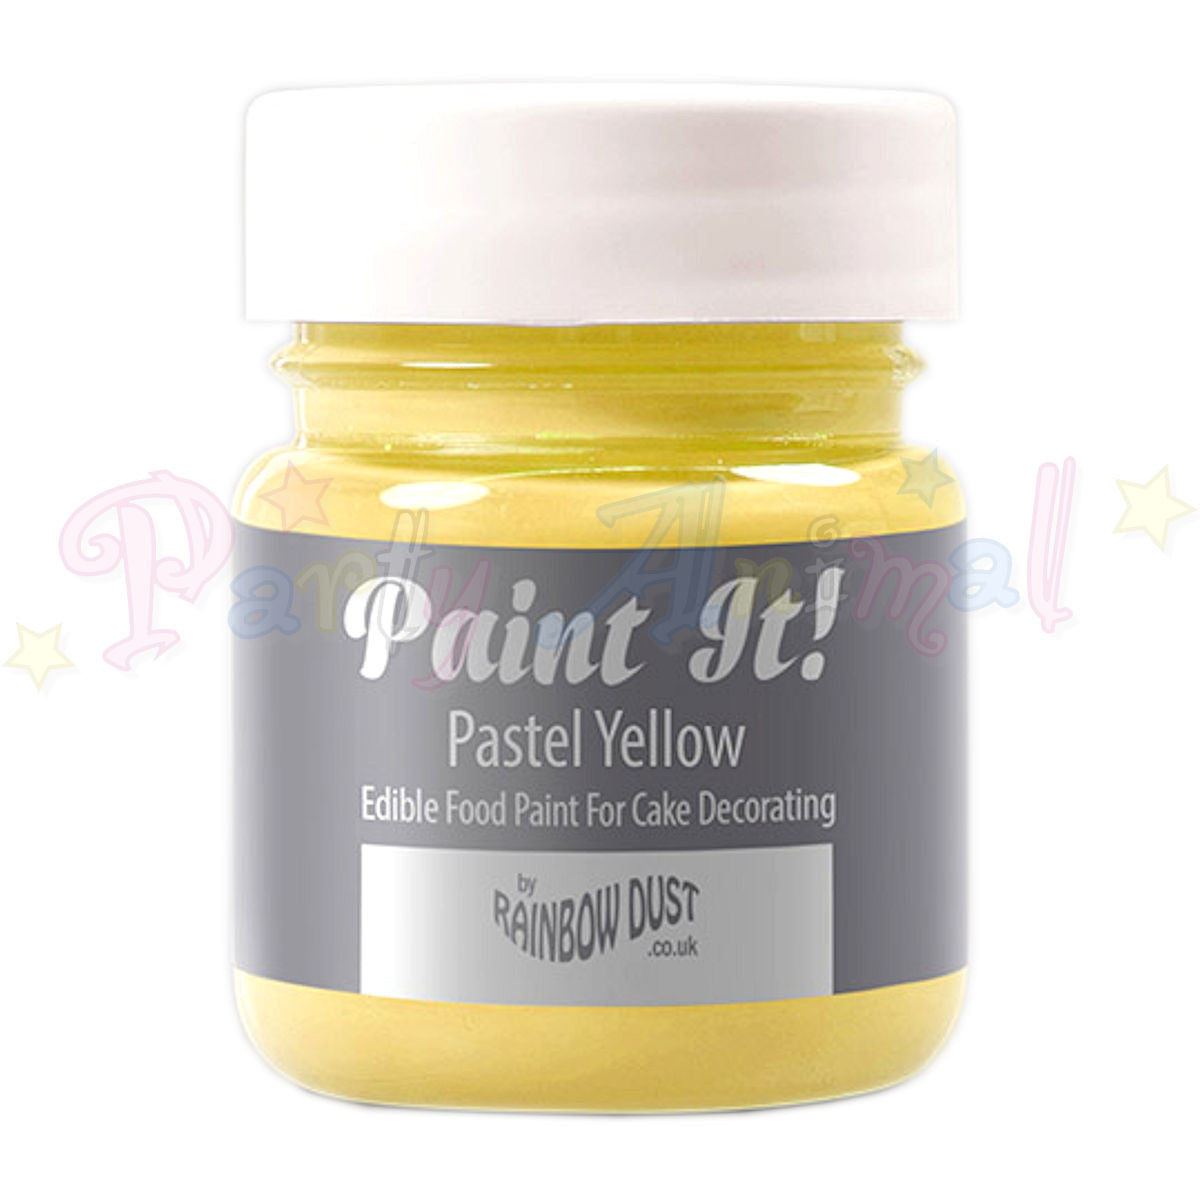 Rainbow Dust Edible Food Paint - Paint It!  PASTEL YELLOW